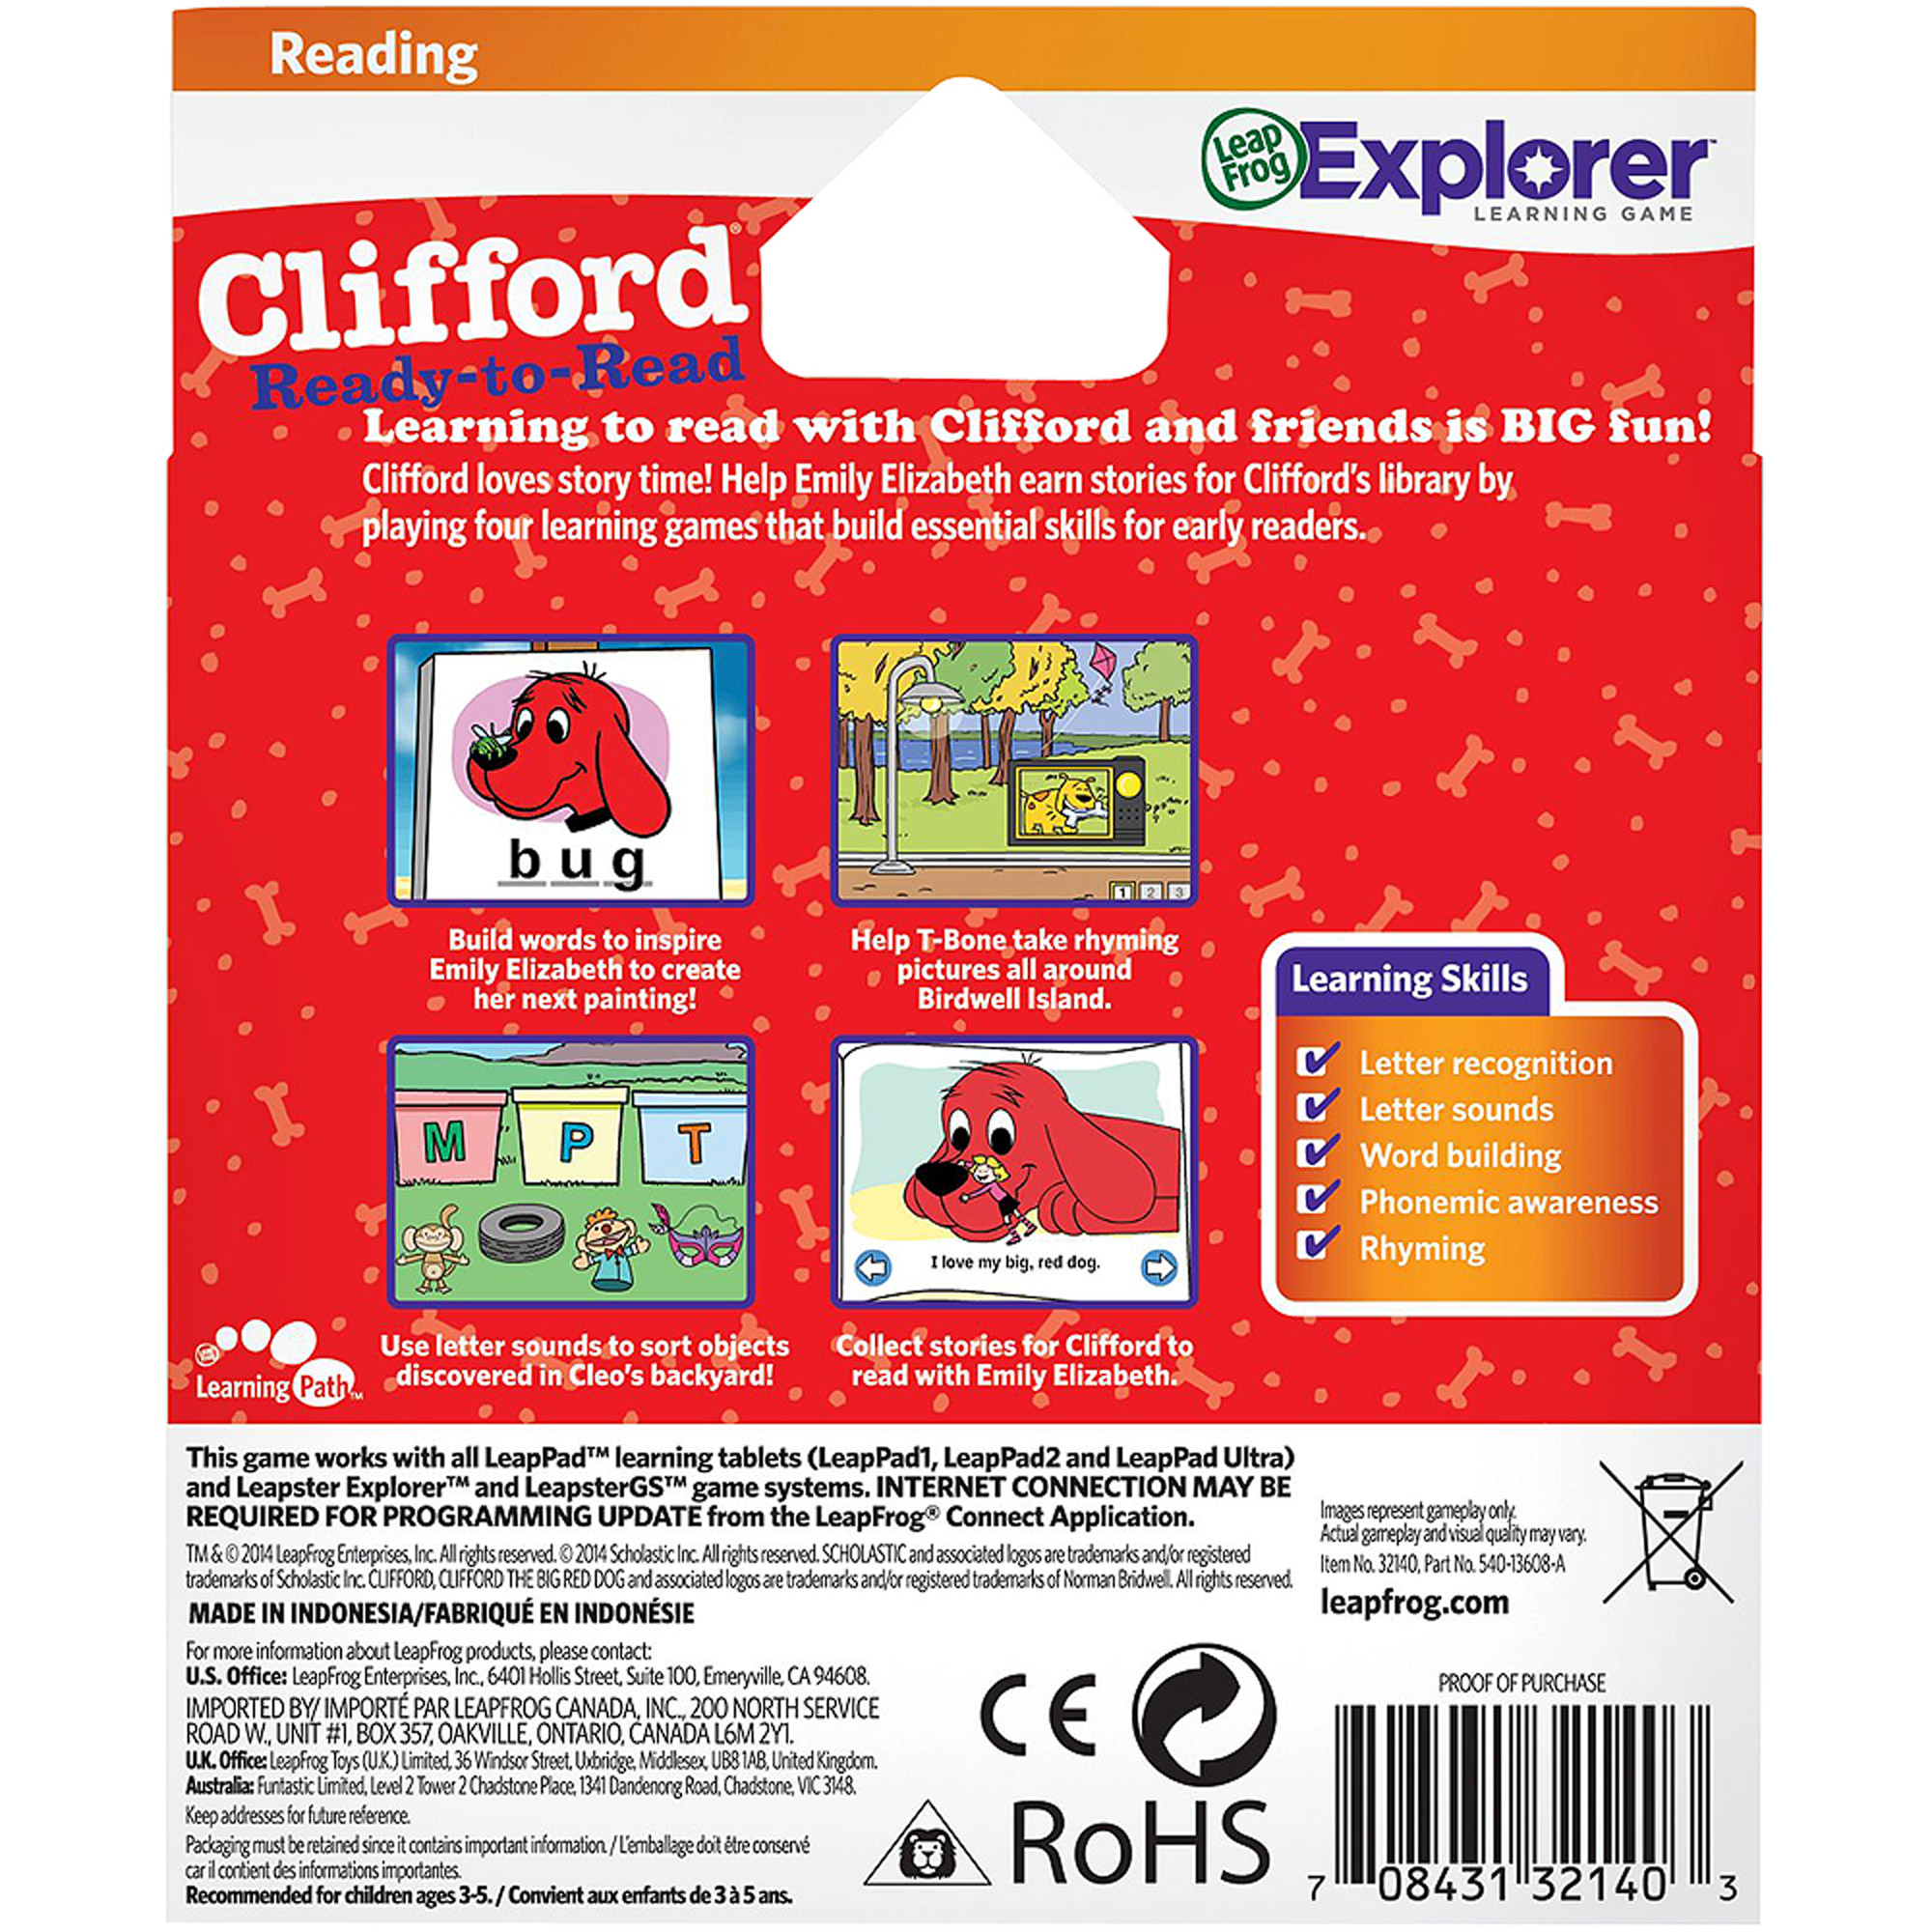 leapfrog learning game scholastic clifford for leappad tablets